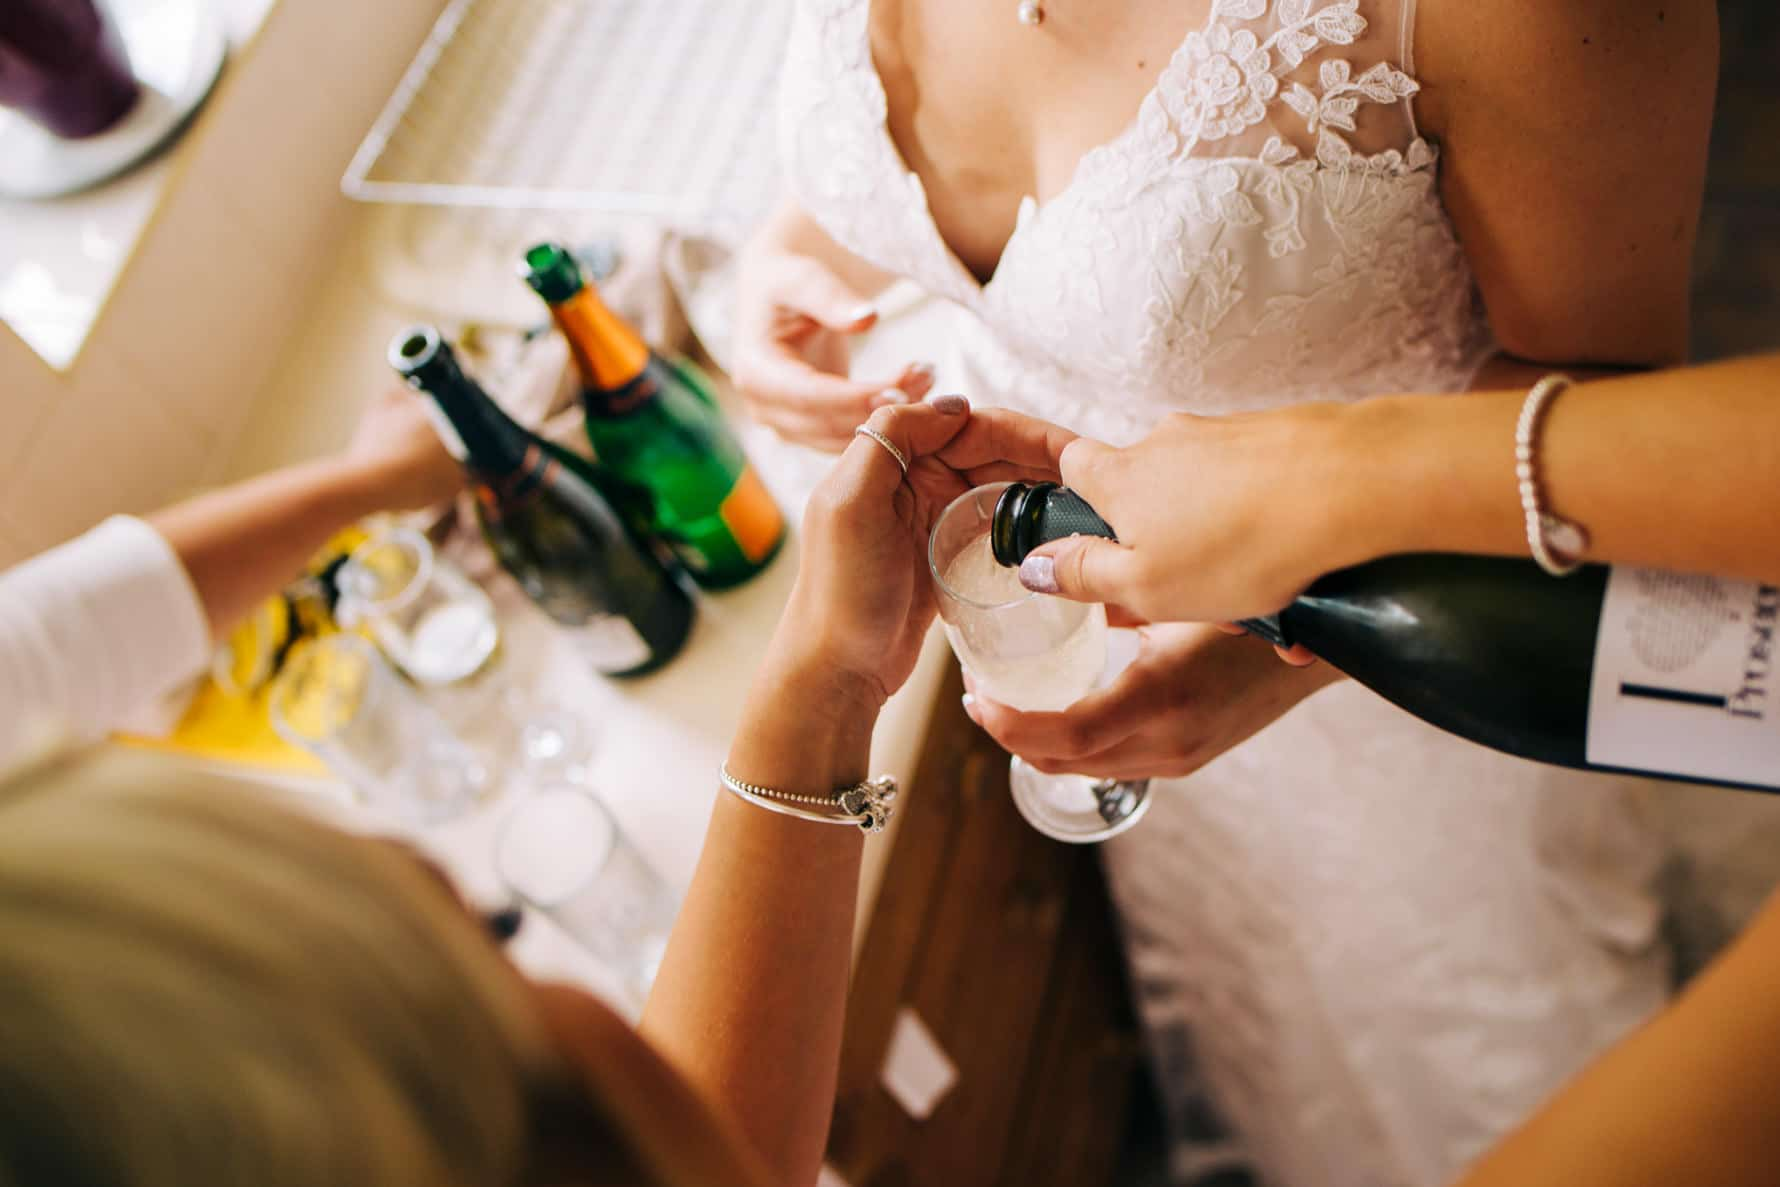 bridesmaids pouring a glass of wine